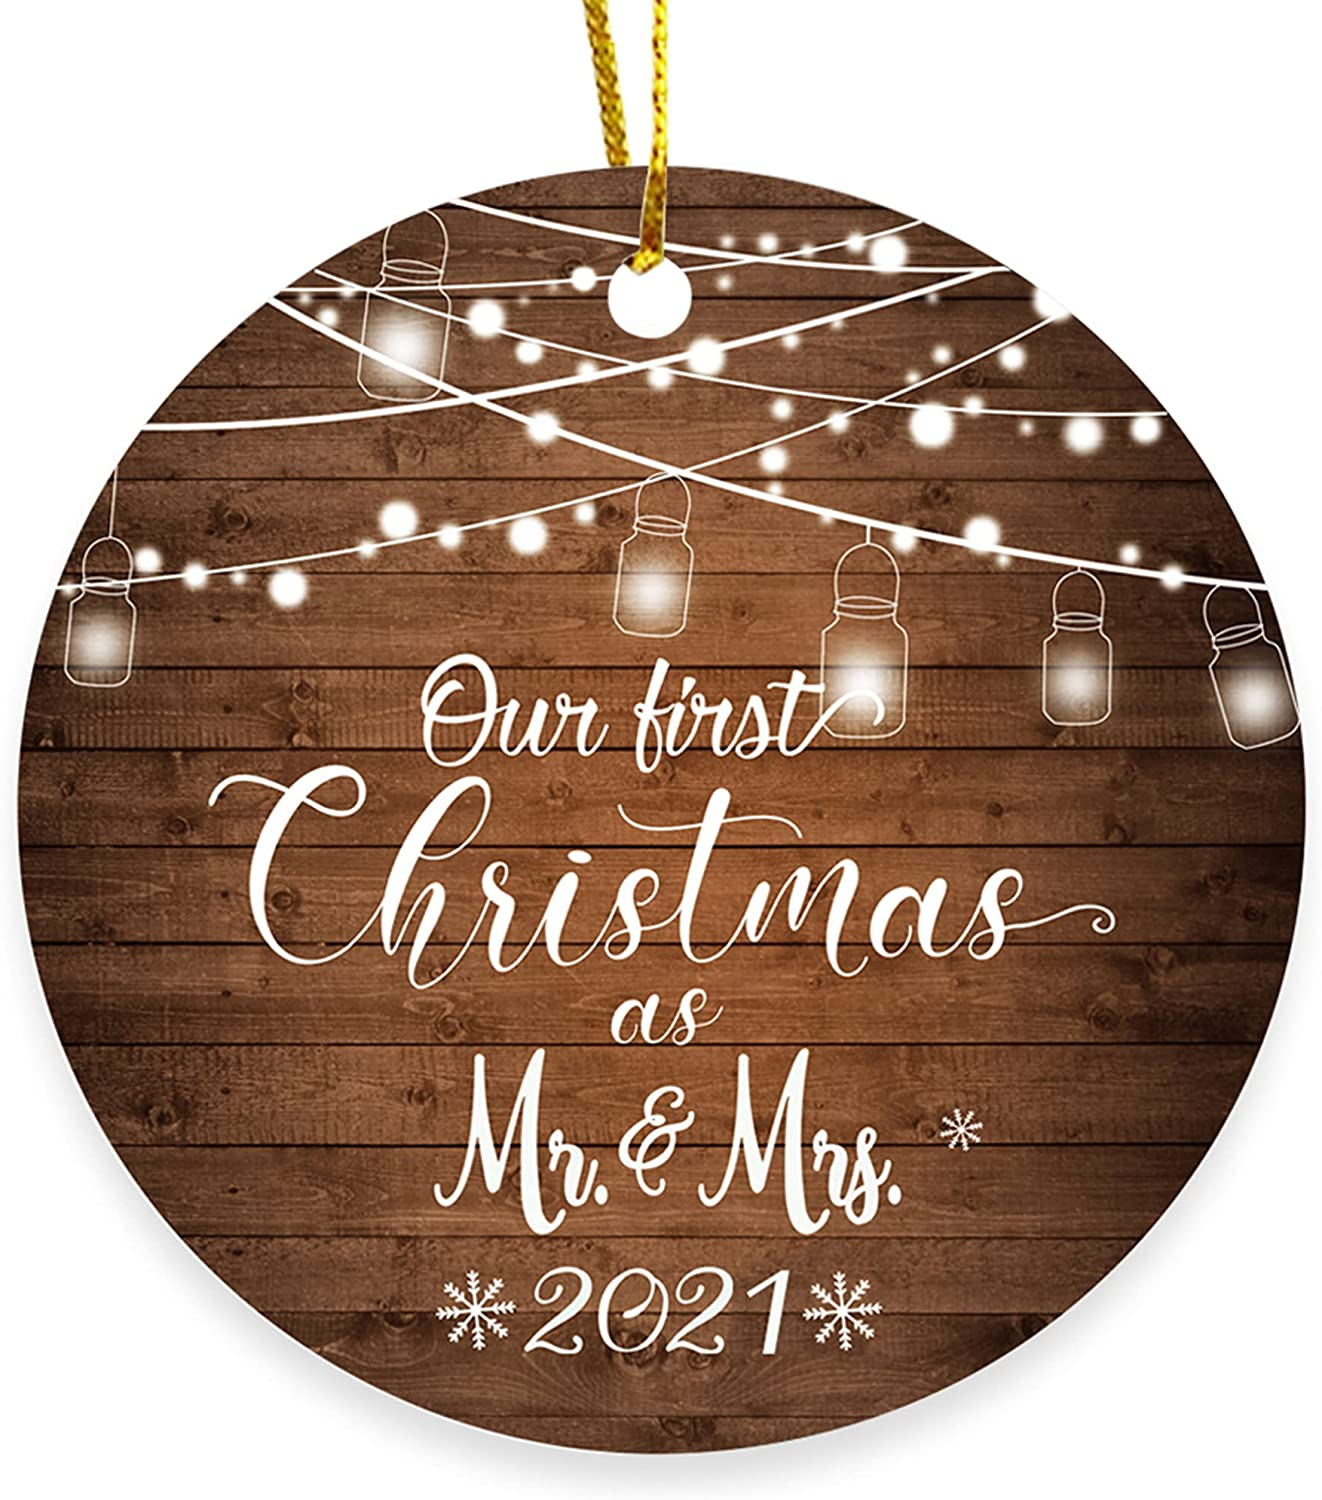 Our First Christmas Married Ornament 2021 Personalized Mr and Mrs Wedding Gifts for Couple Unique Funny Decorations Decor Set for Home